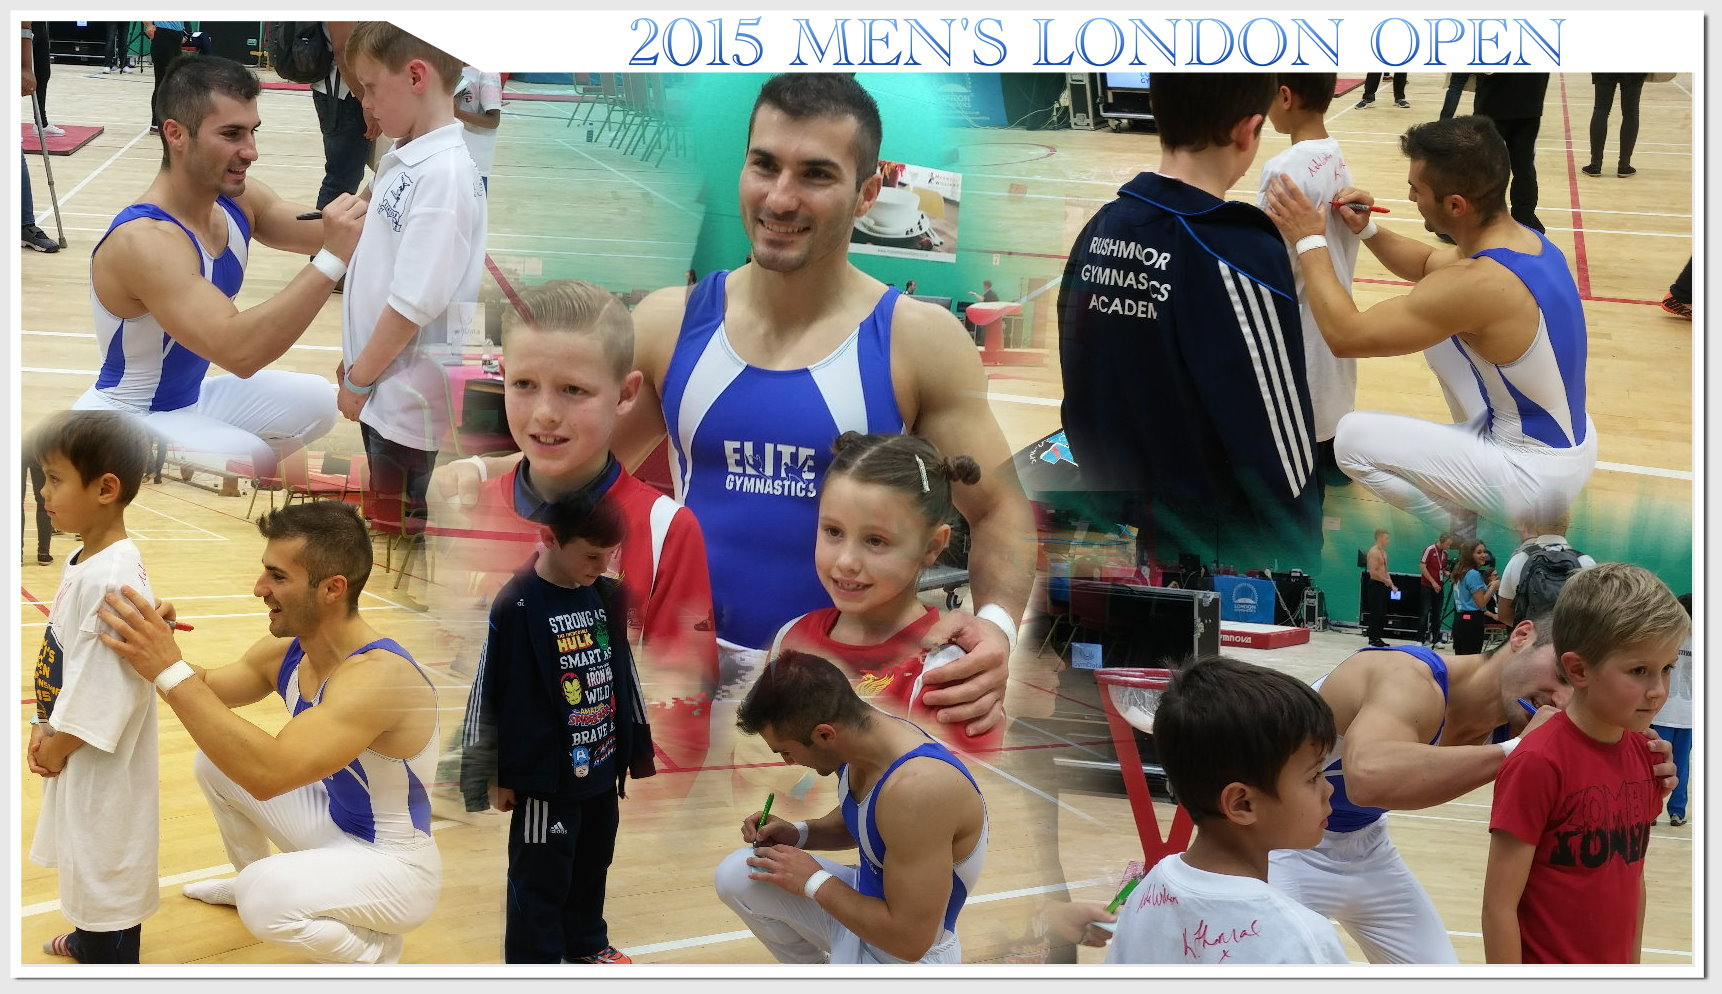 Stefan Kolimechkov meets young gymnasts and fans and signs autographs